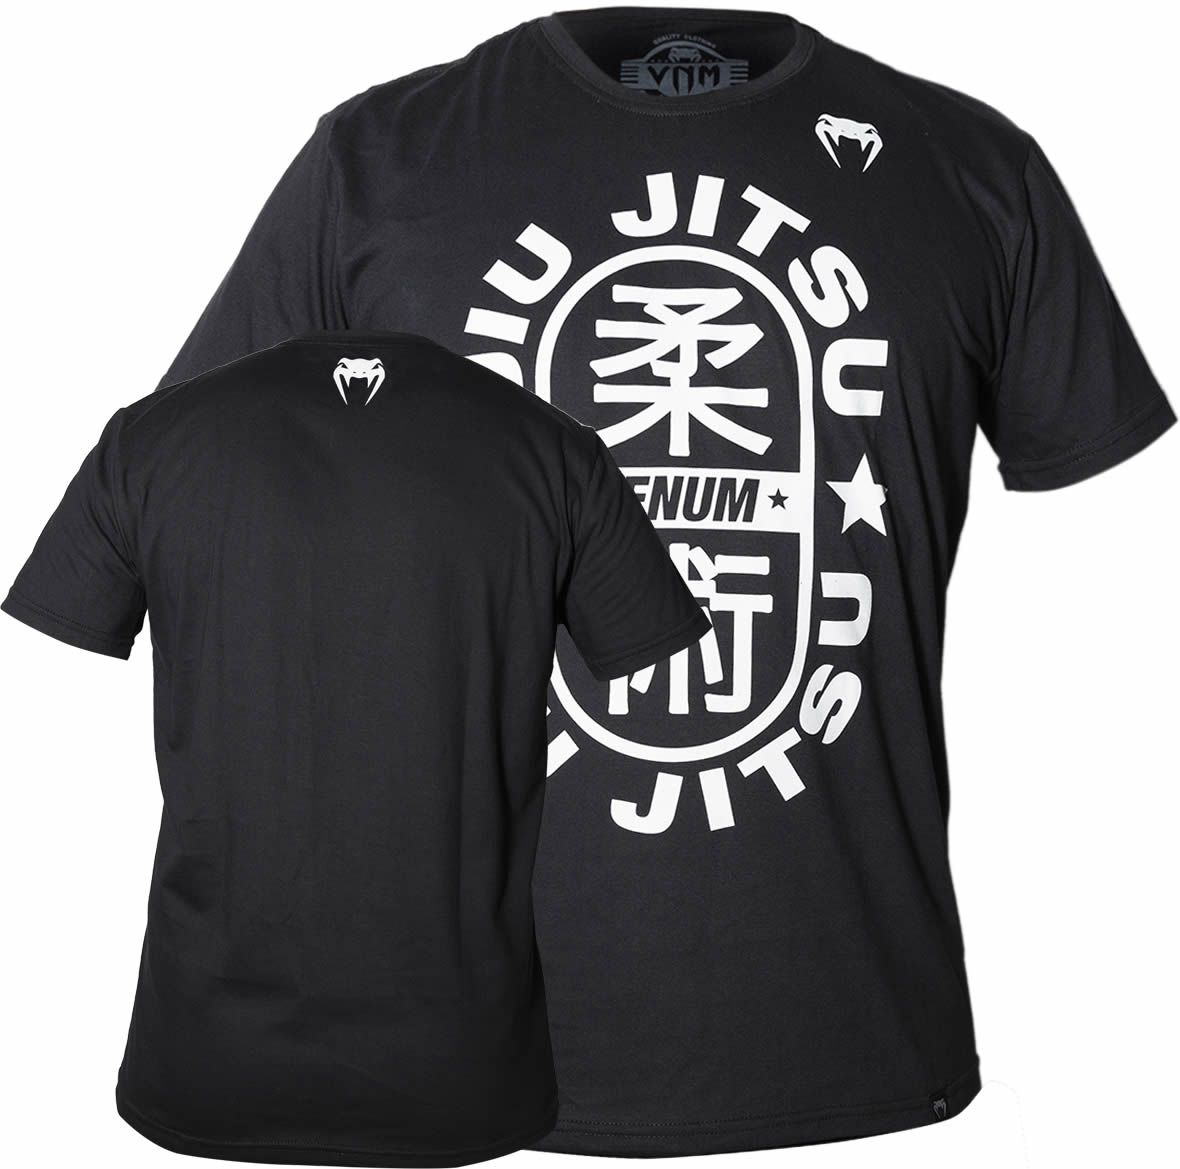 Camisa Camiseta Jiu Jitsu Star - Preta - Venum Fight